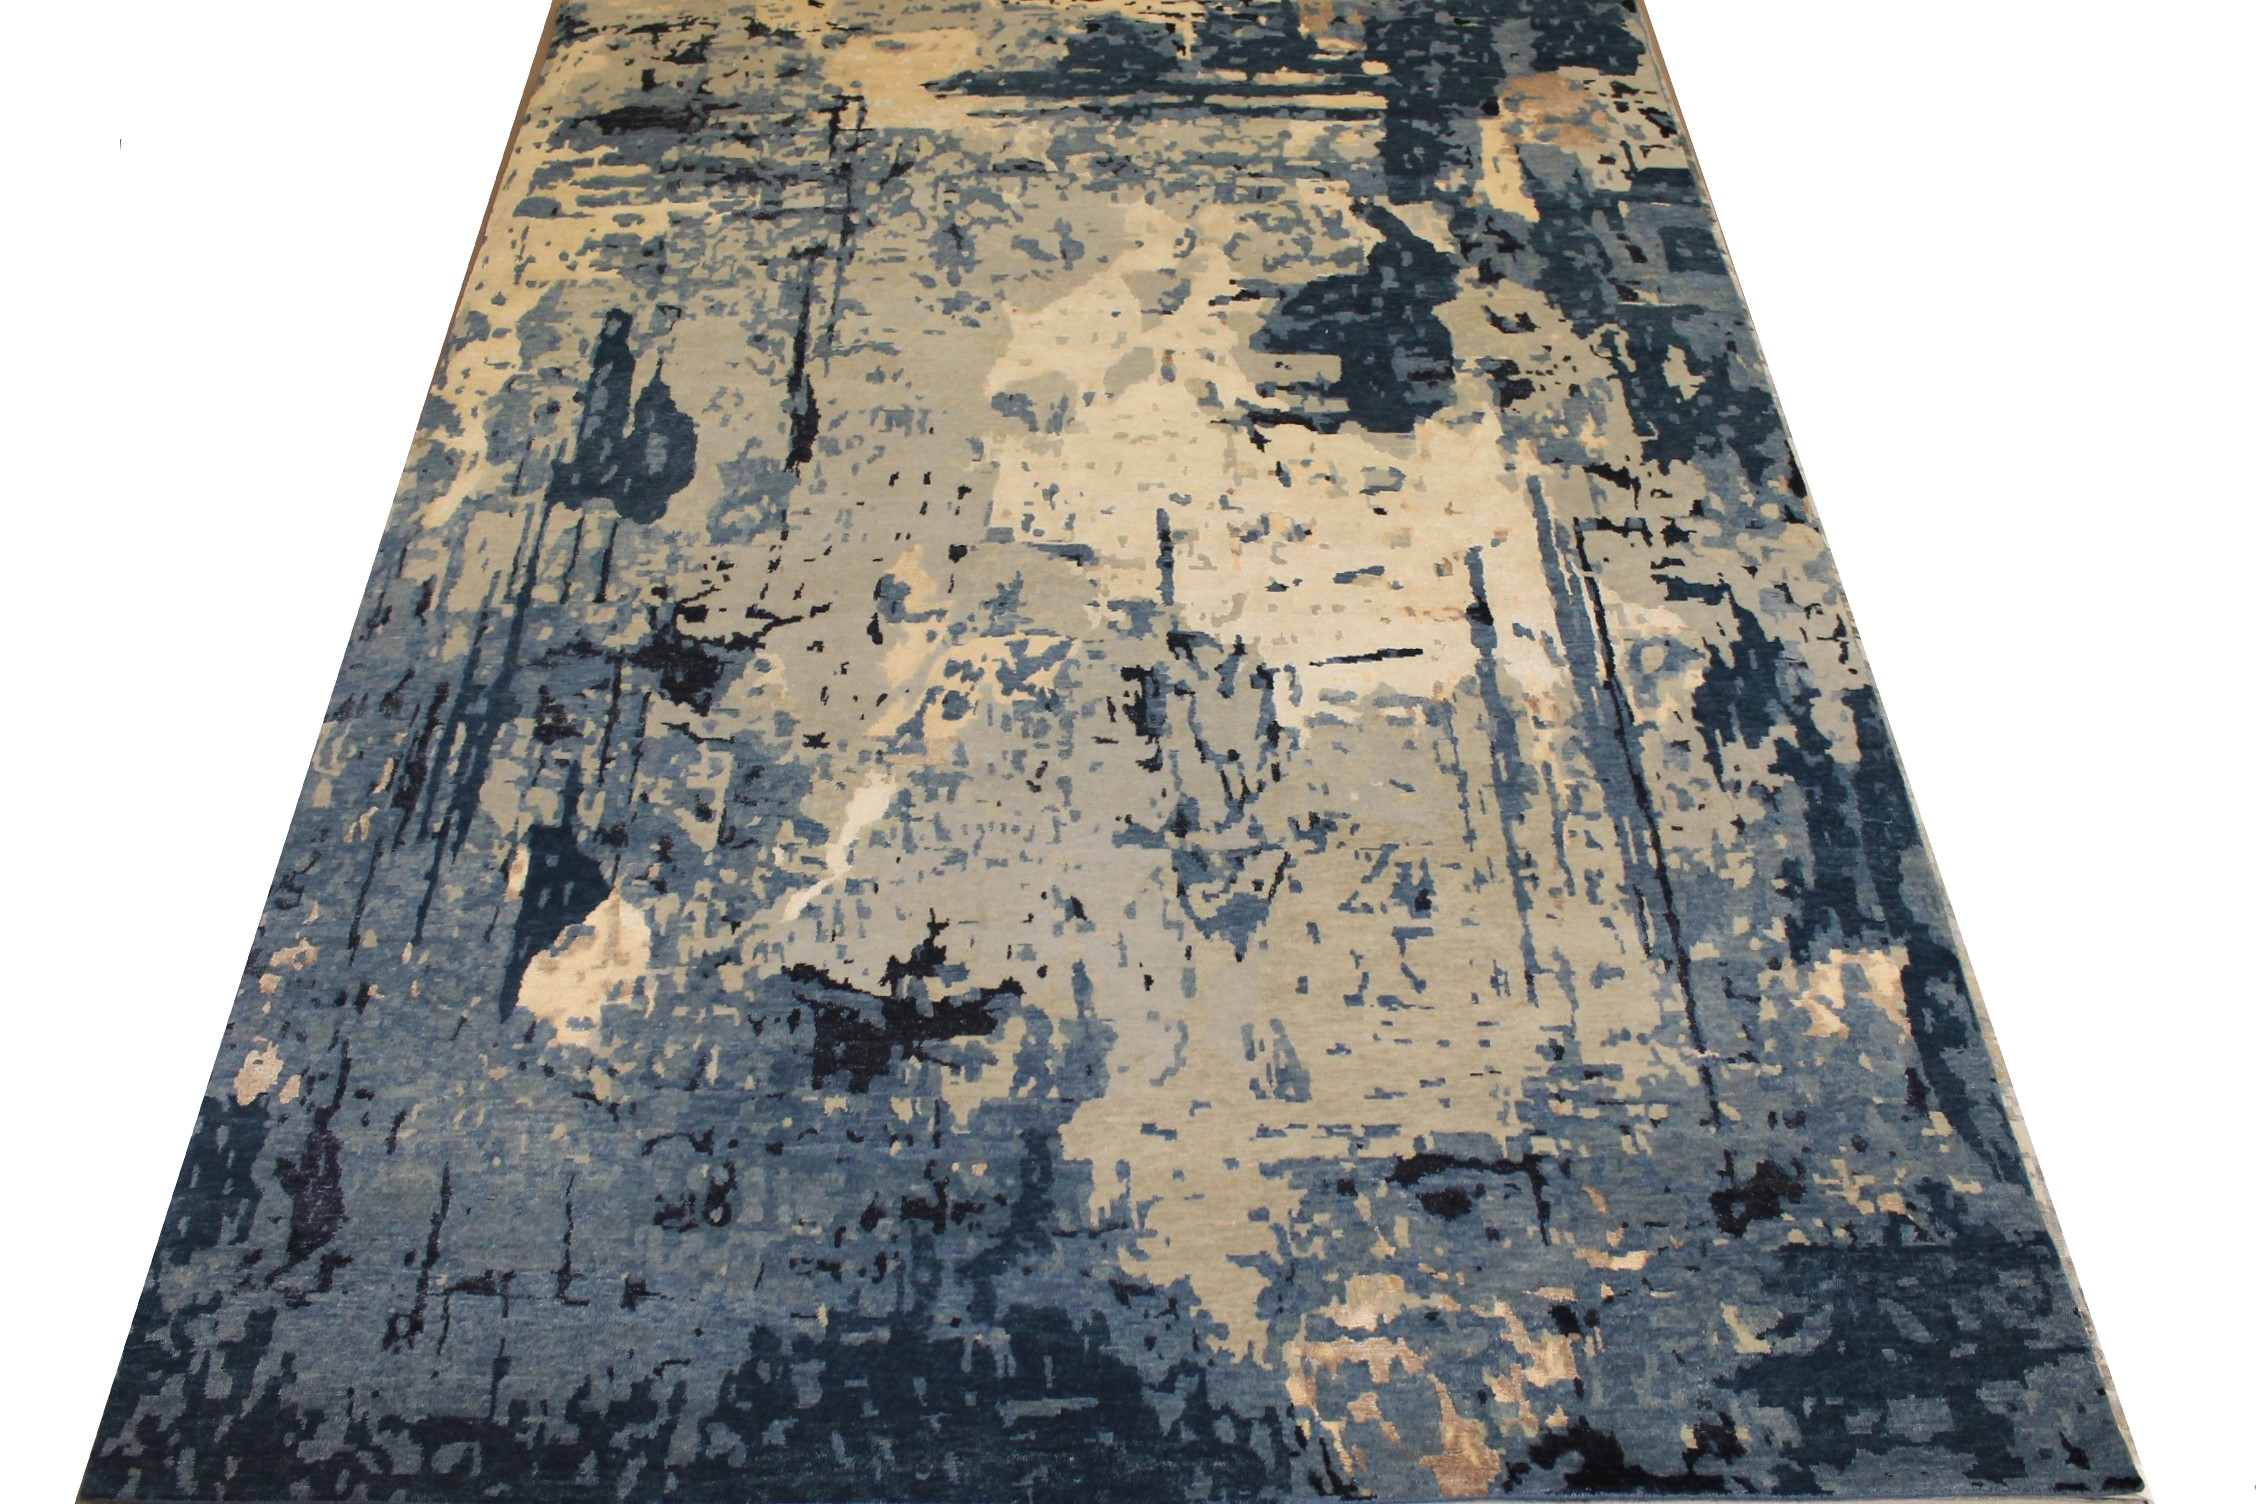 9x12 Modern Hand Knotted Wool & Viscose Area Rug - MR025457